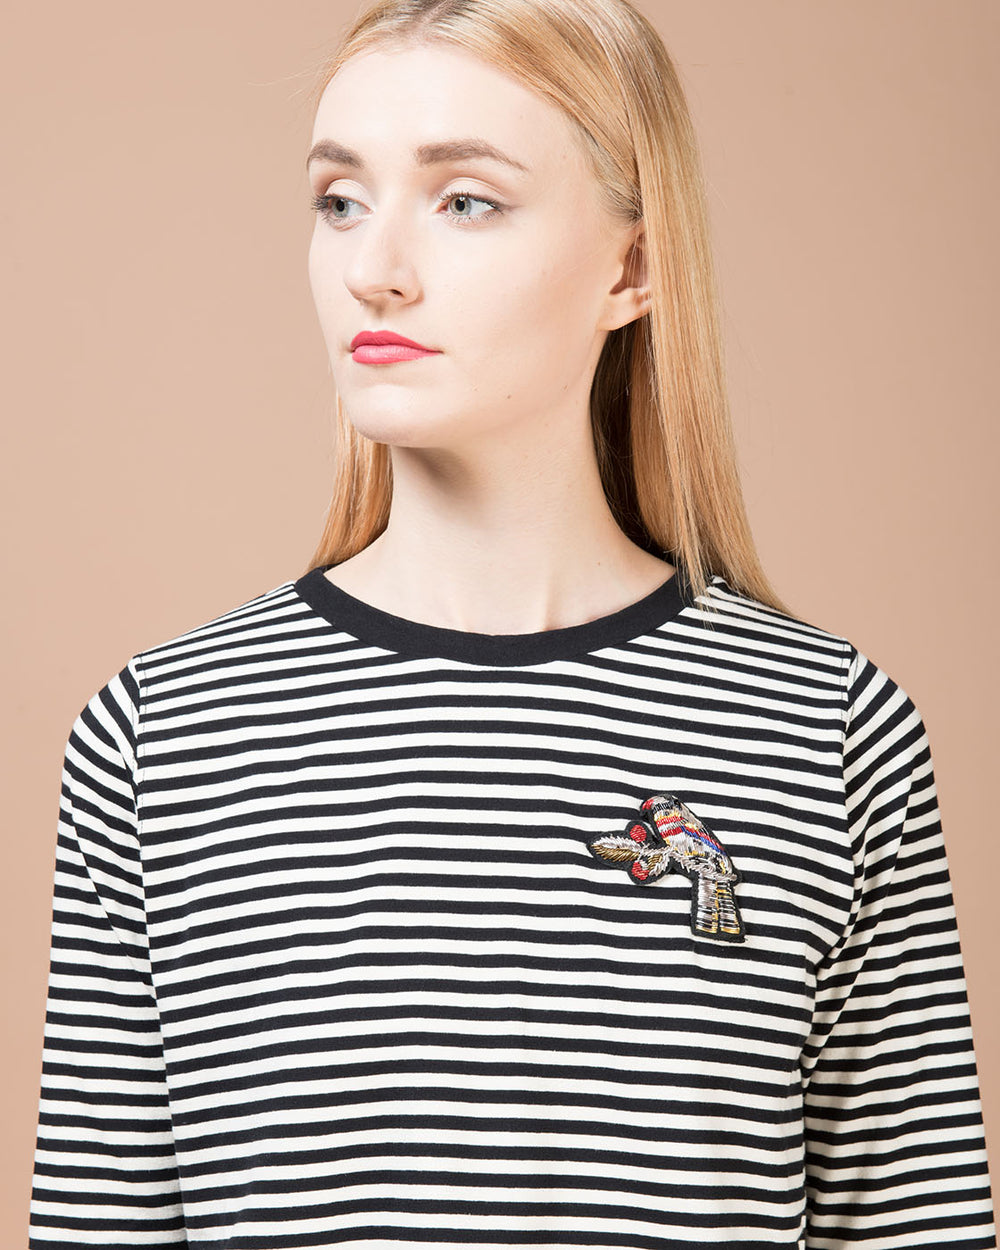 Beige and Black Stripes Sleeve T-Shirt